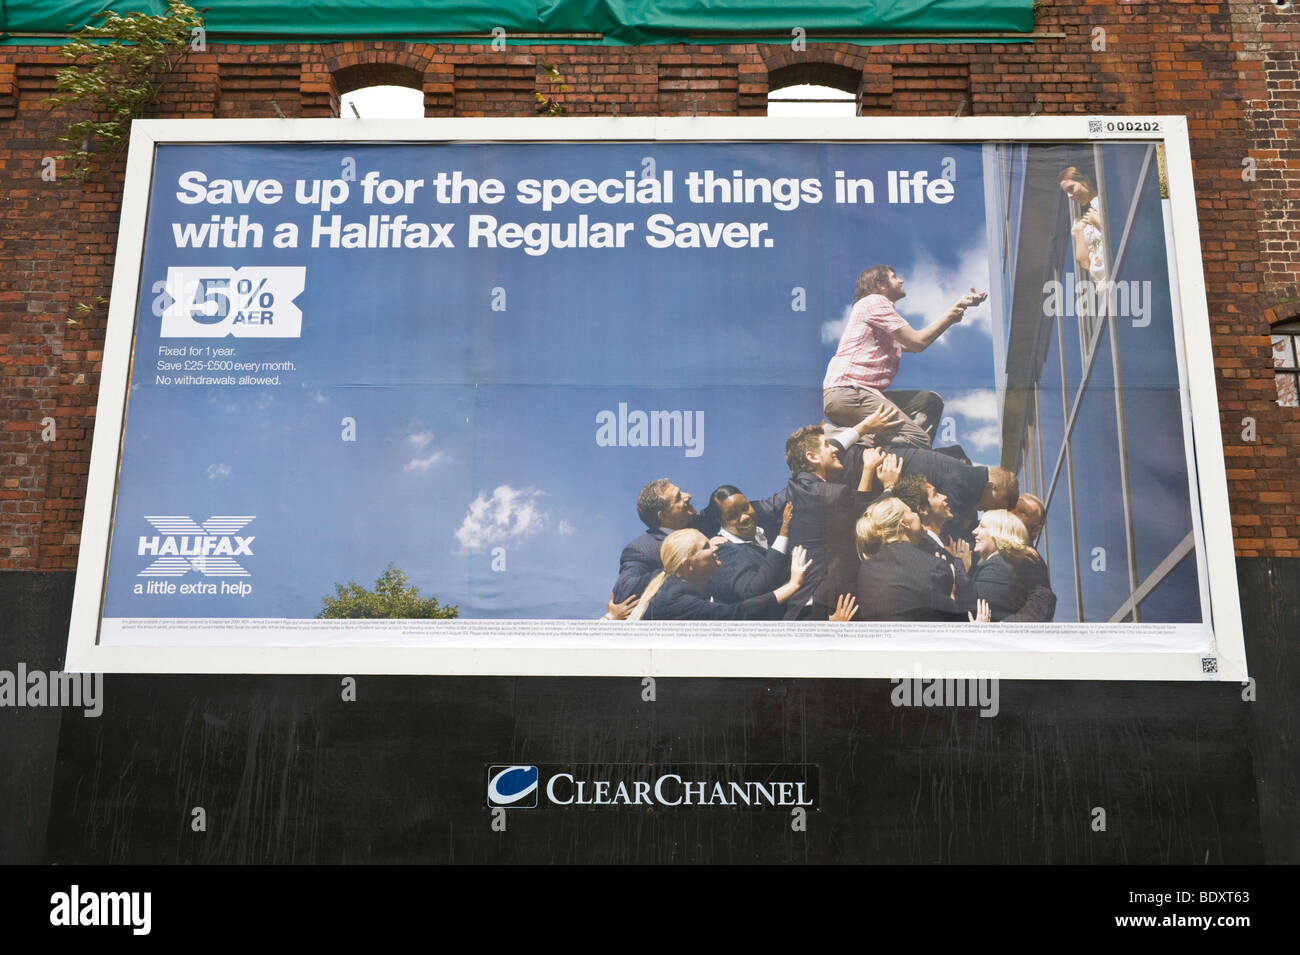 ClearChannel billboard for Halifax Regular Saver on side of derelict building in UK - Stock Image